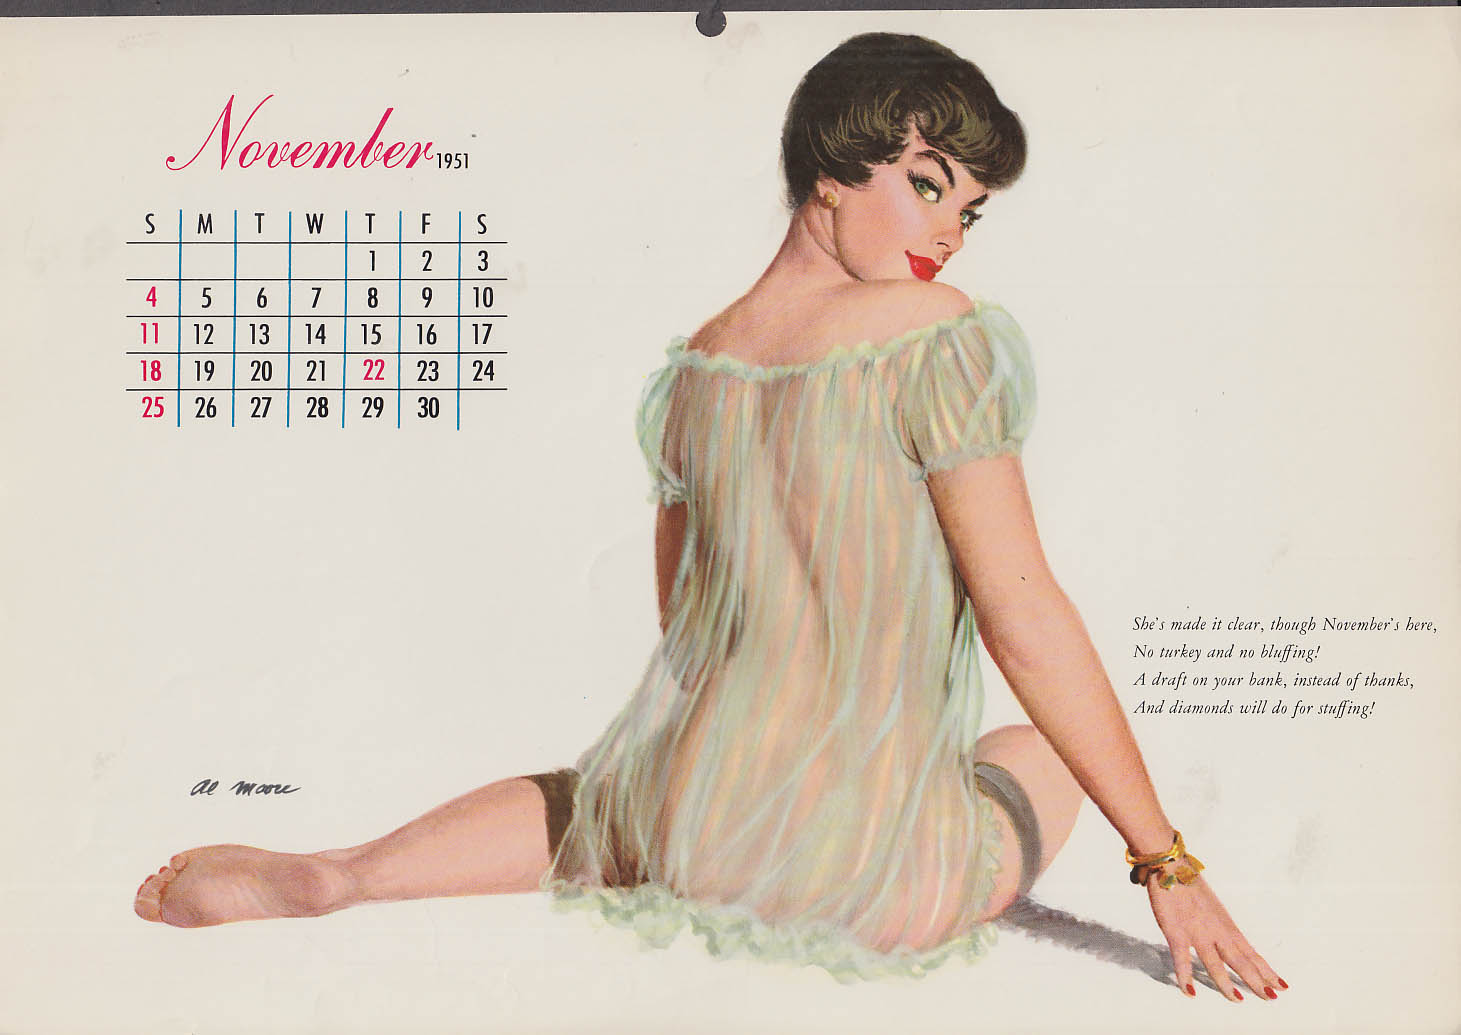 Al Moore pin-up calendar page 11 1951 see-thru negligee from behind